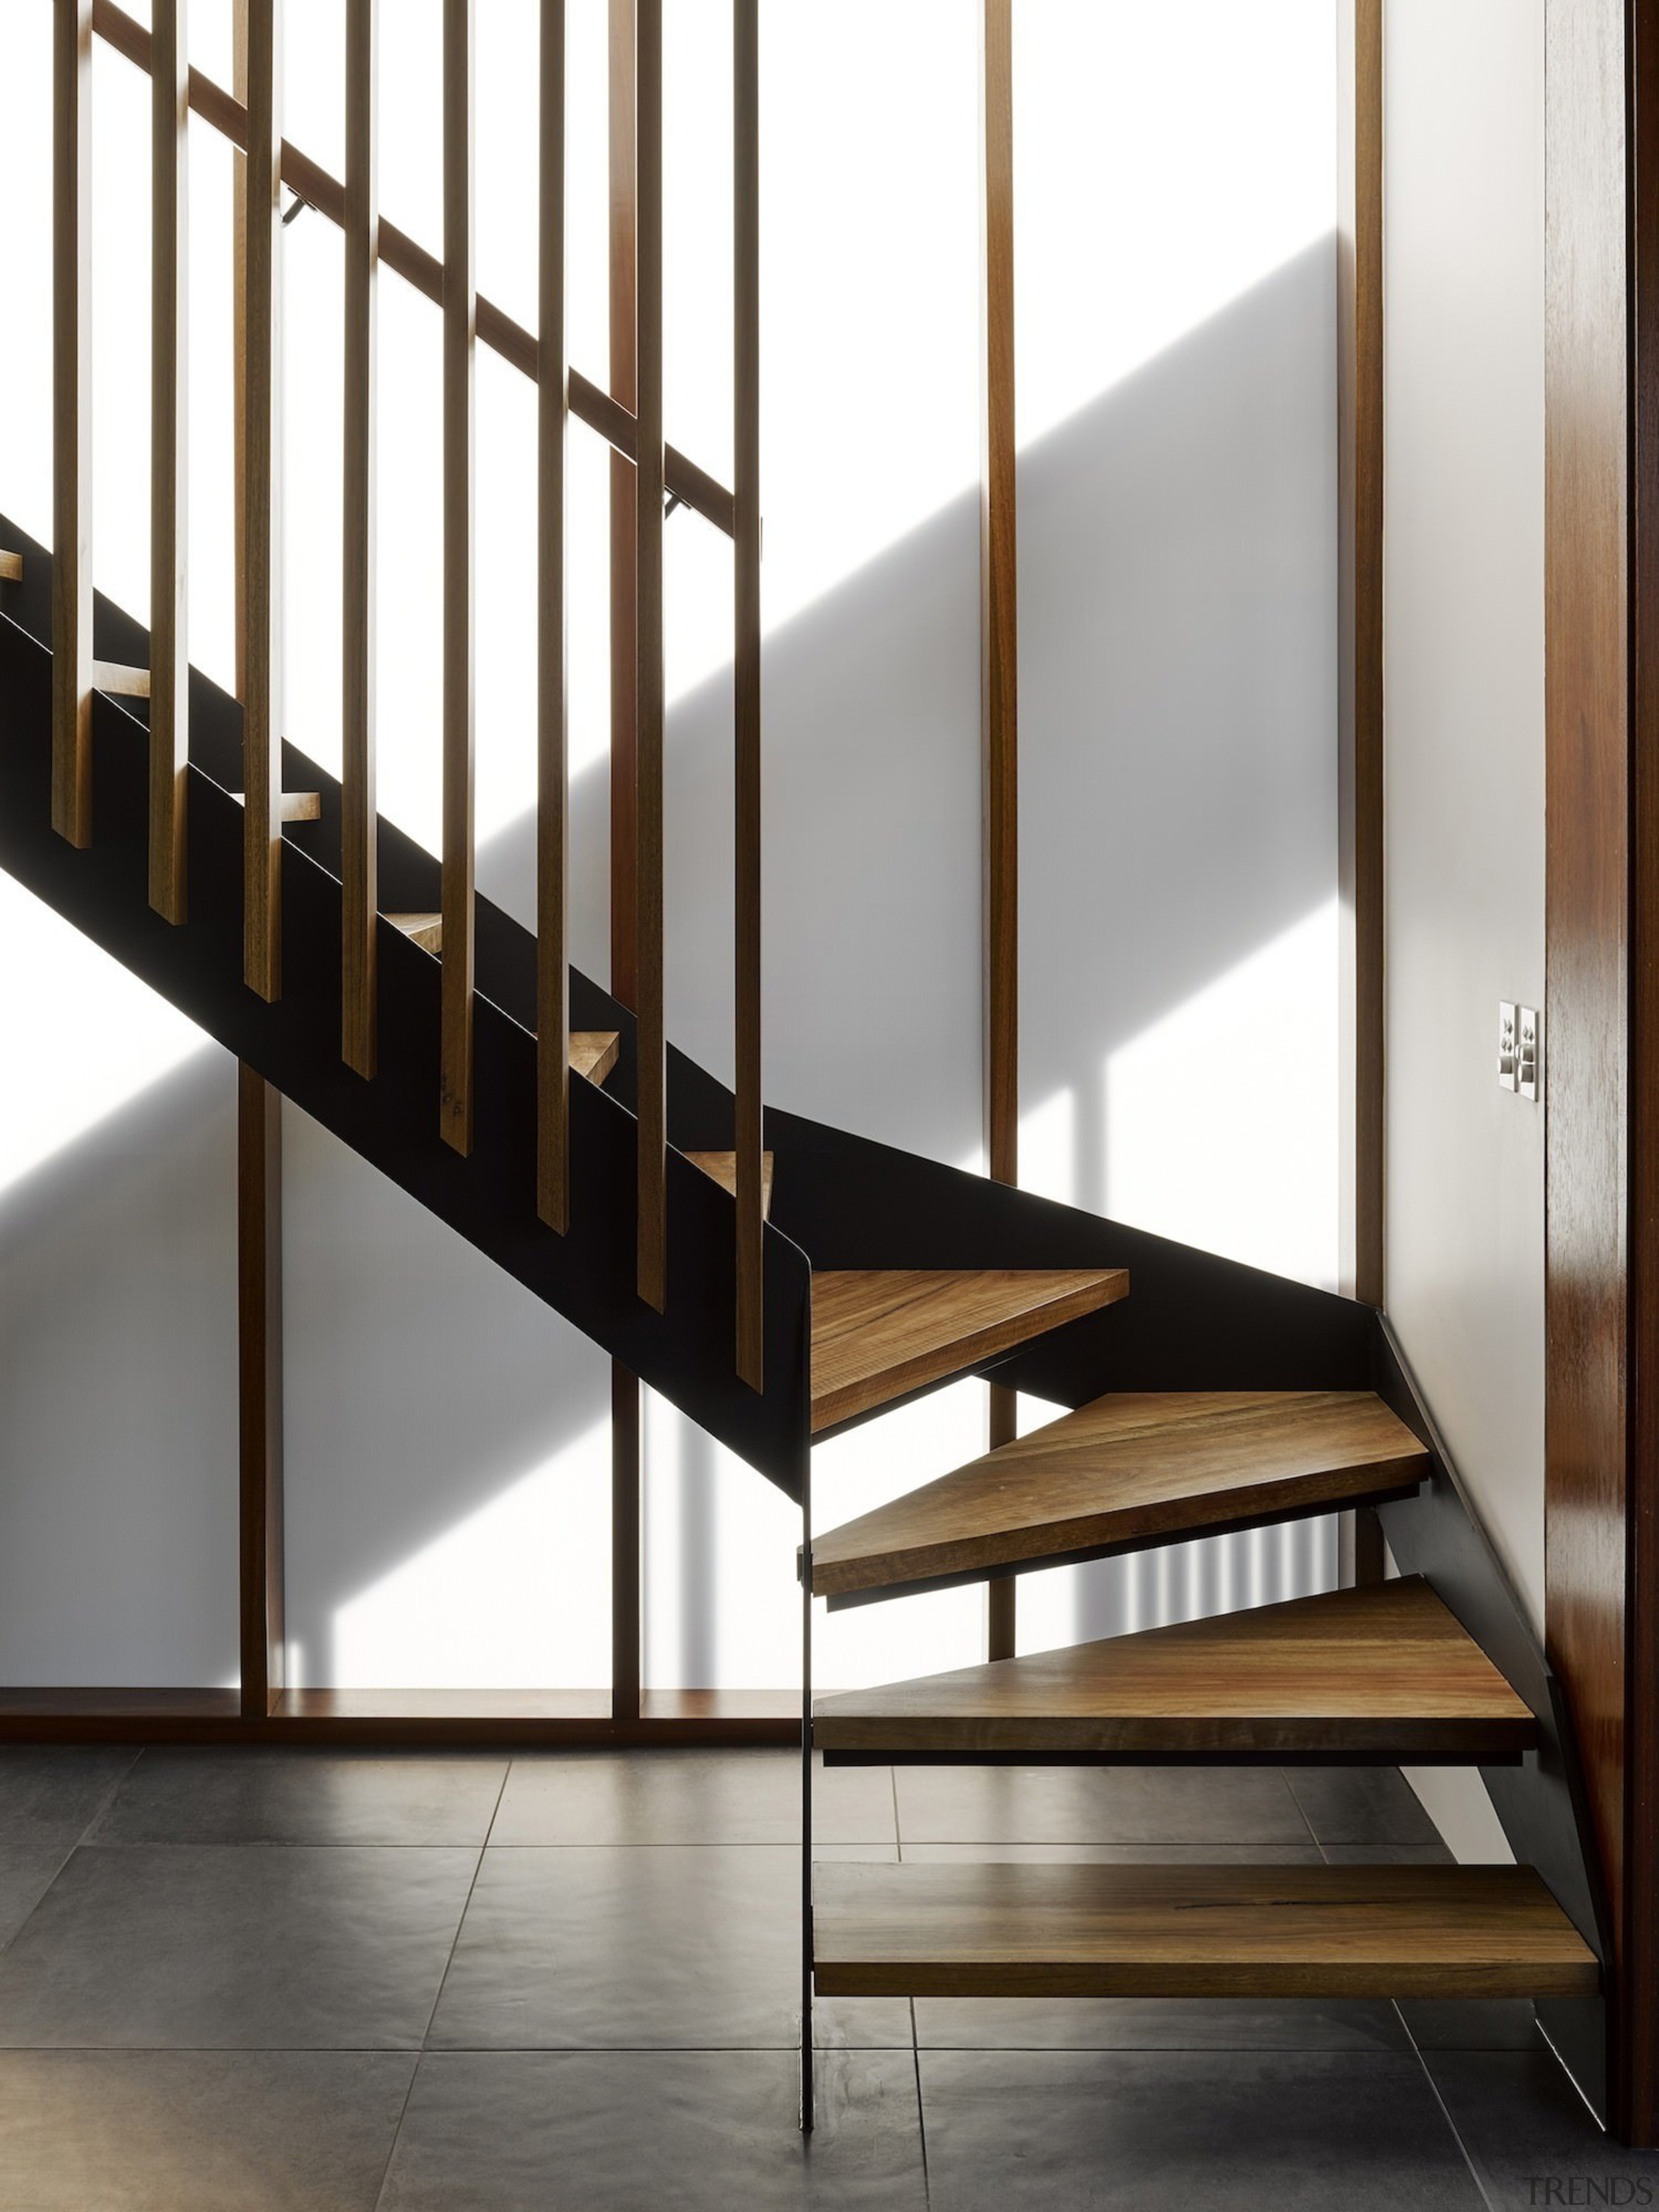 Architect: Refresh DesignPhotography by Roger D'Souza architecture, furniture, handrail, product design, stairs, structure, white